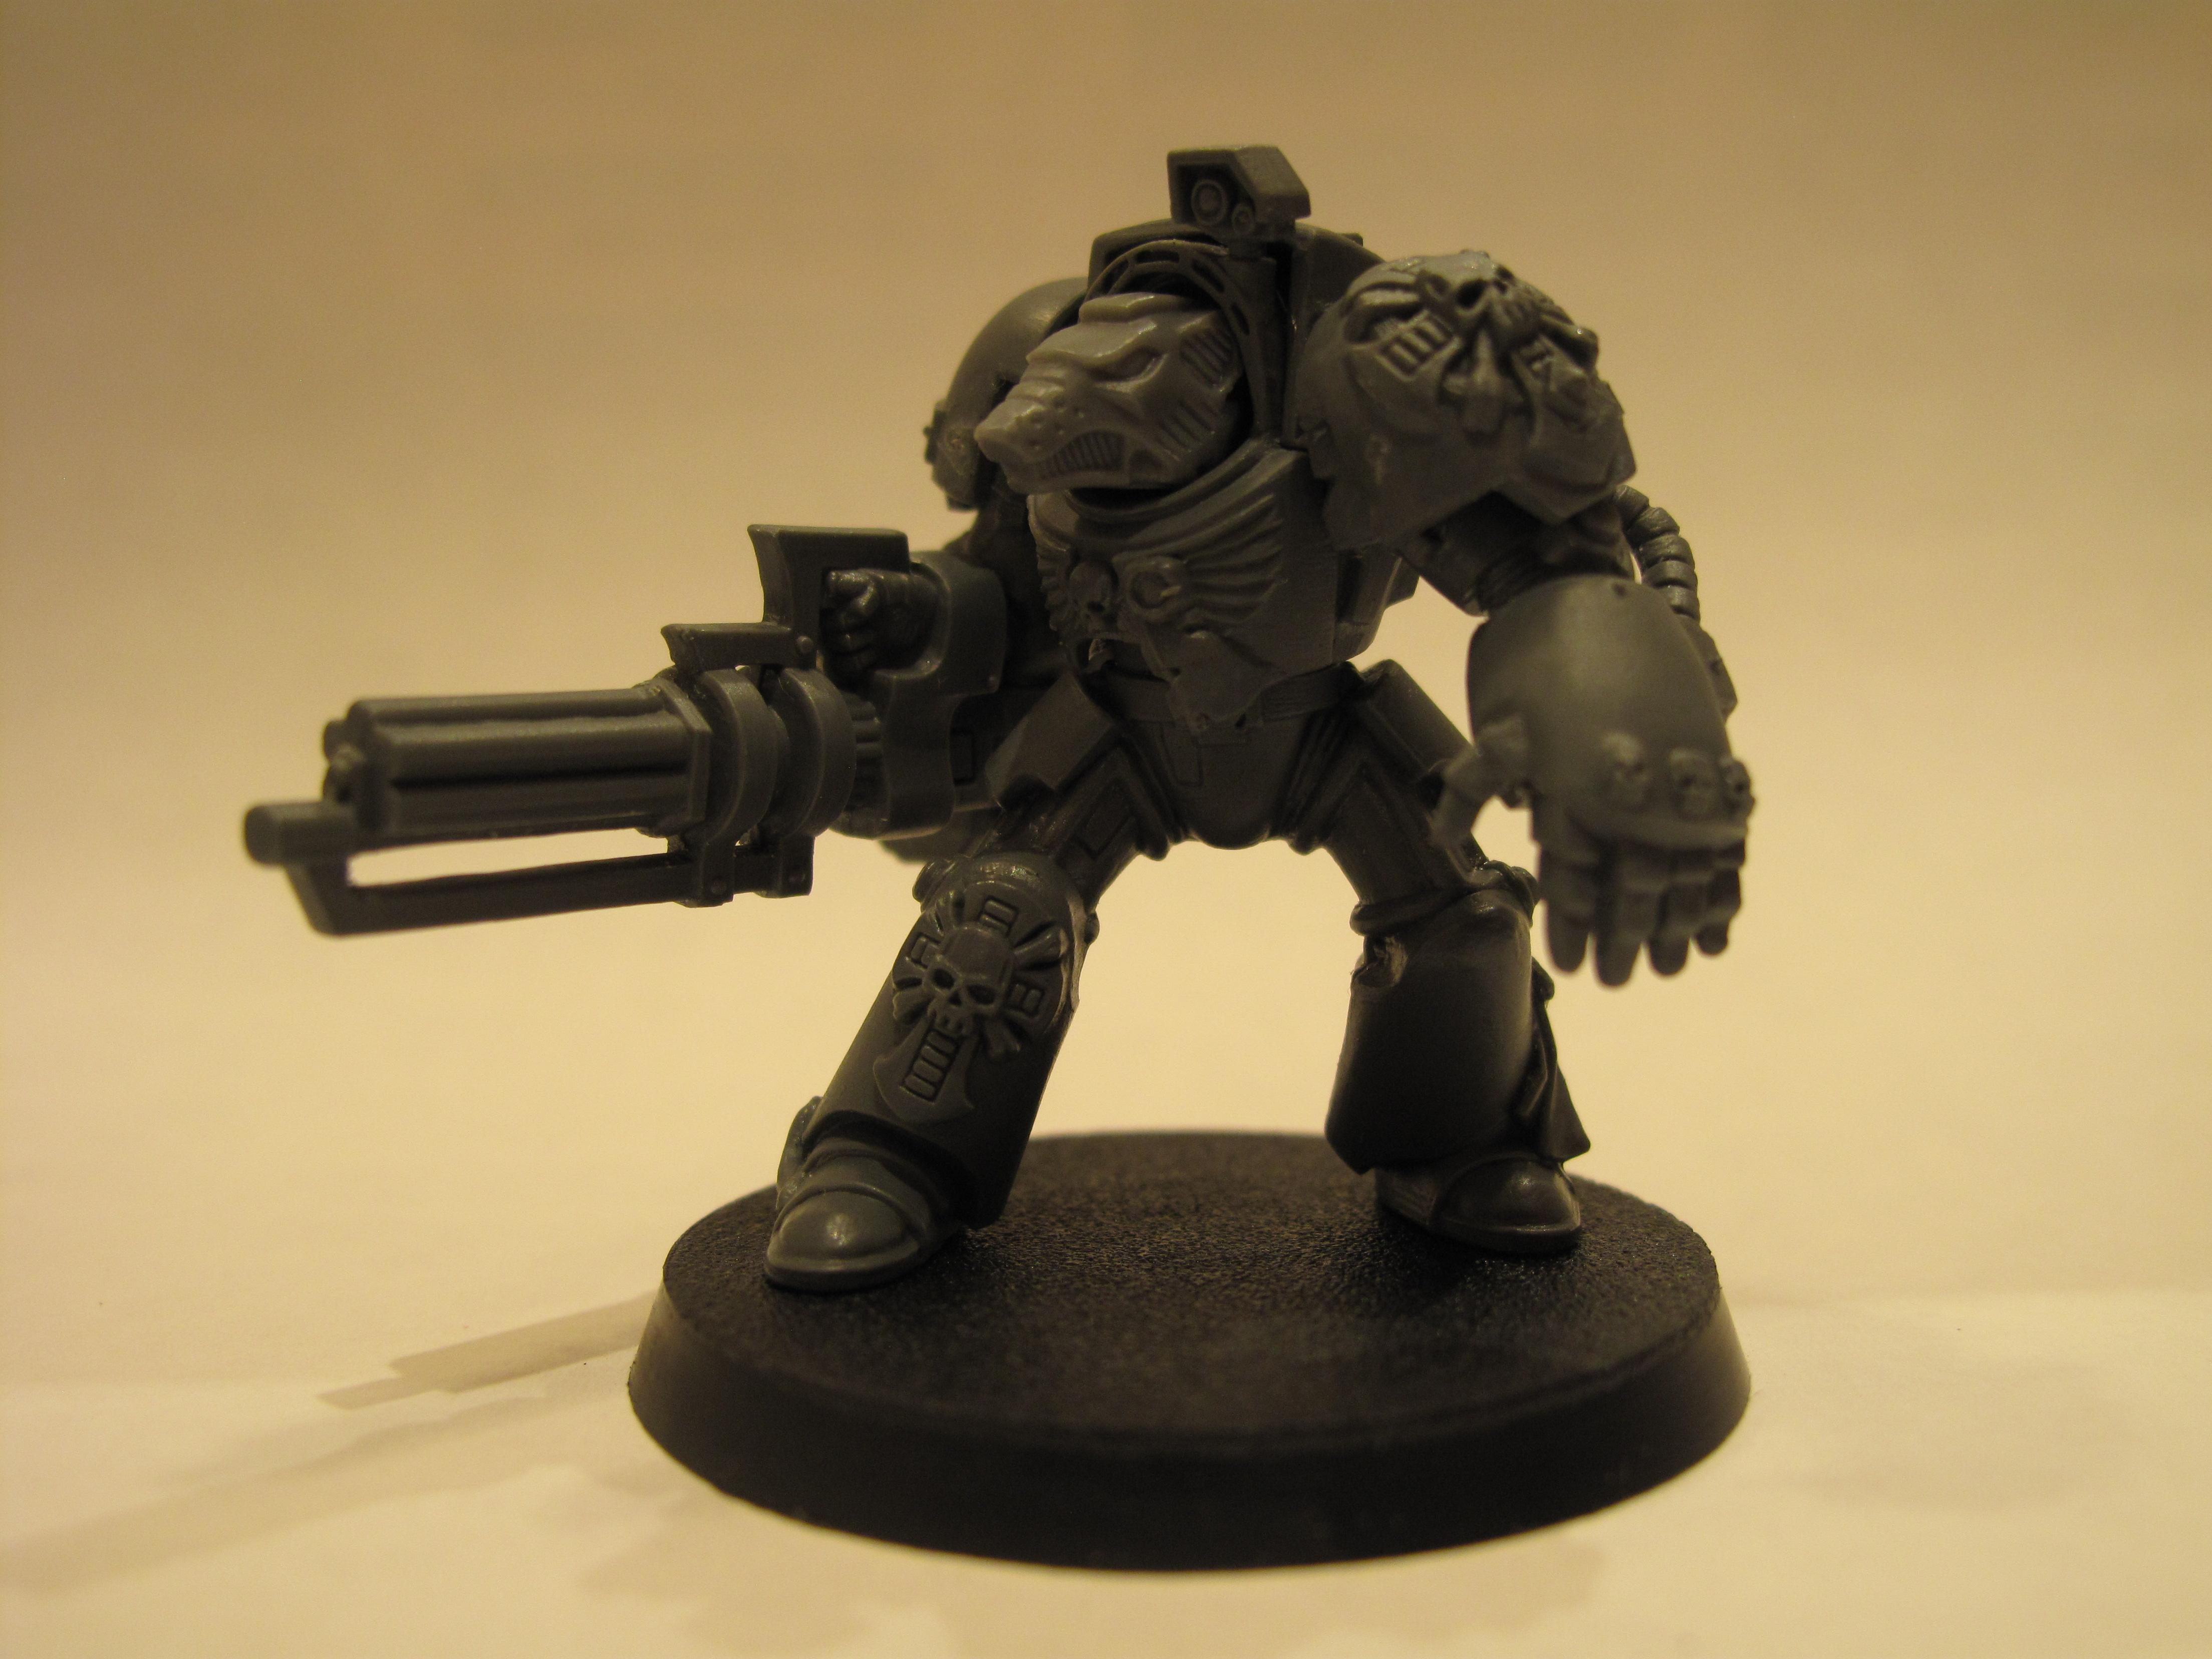 Space Marines, Terminator Armor, Warhammer 40,000, Work In Progress